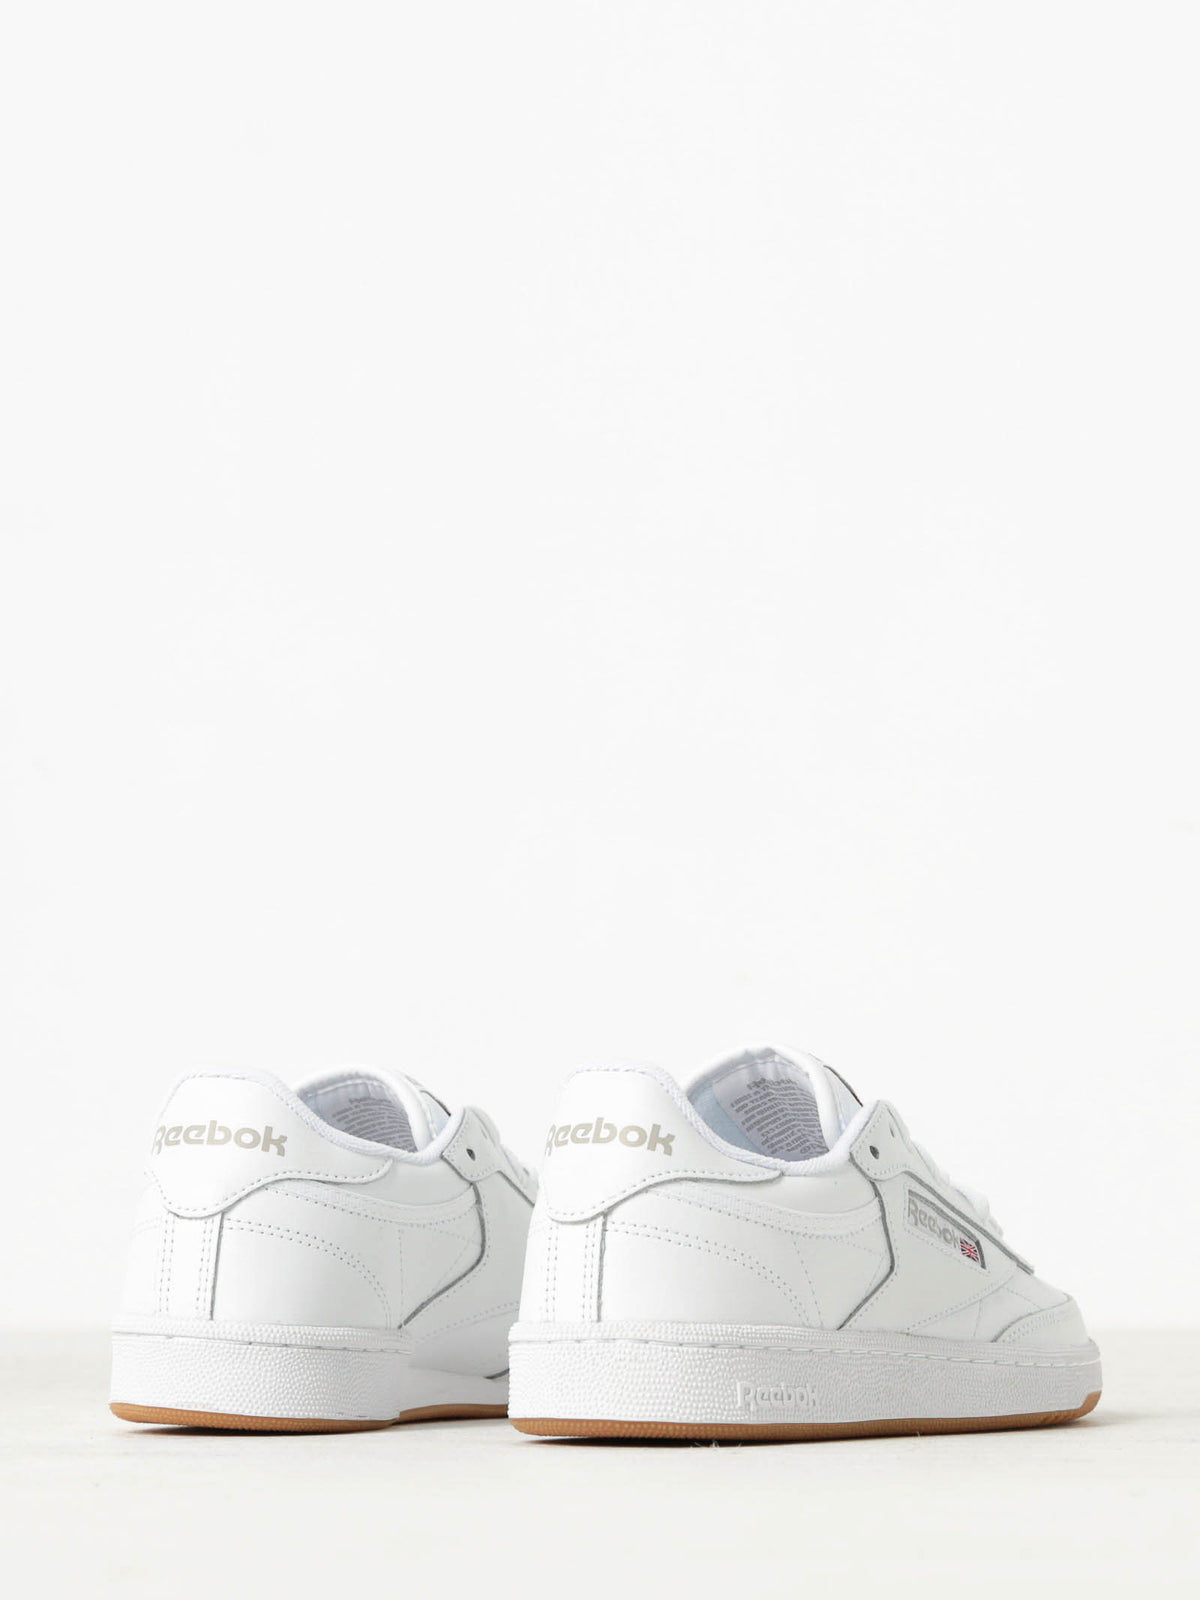 Womens Club C 85 Sneakers in White Leather